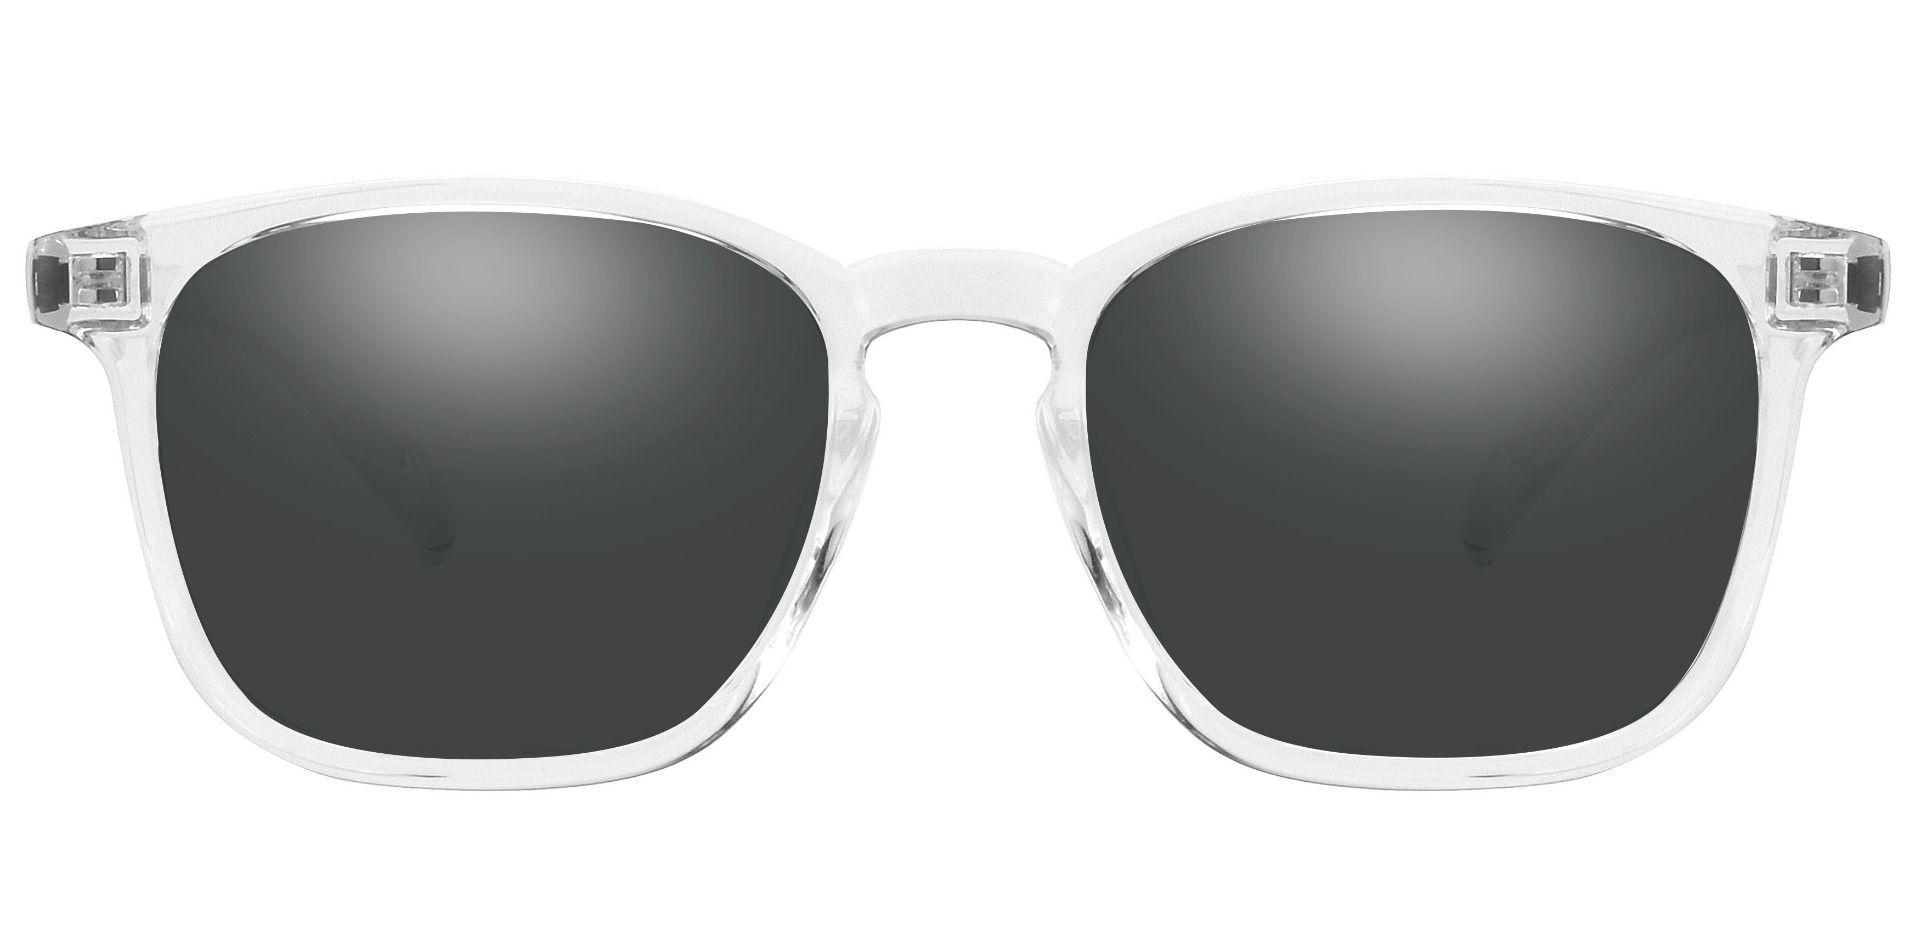 Dusk Classic Square Prescription Sunglasses -  Clear Frame With Gray Lenses